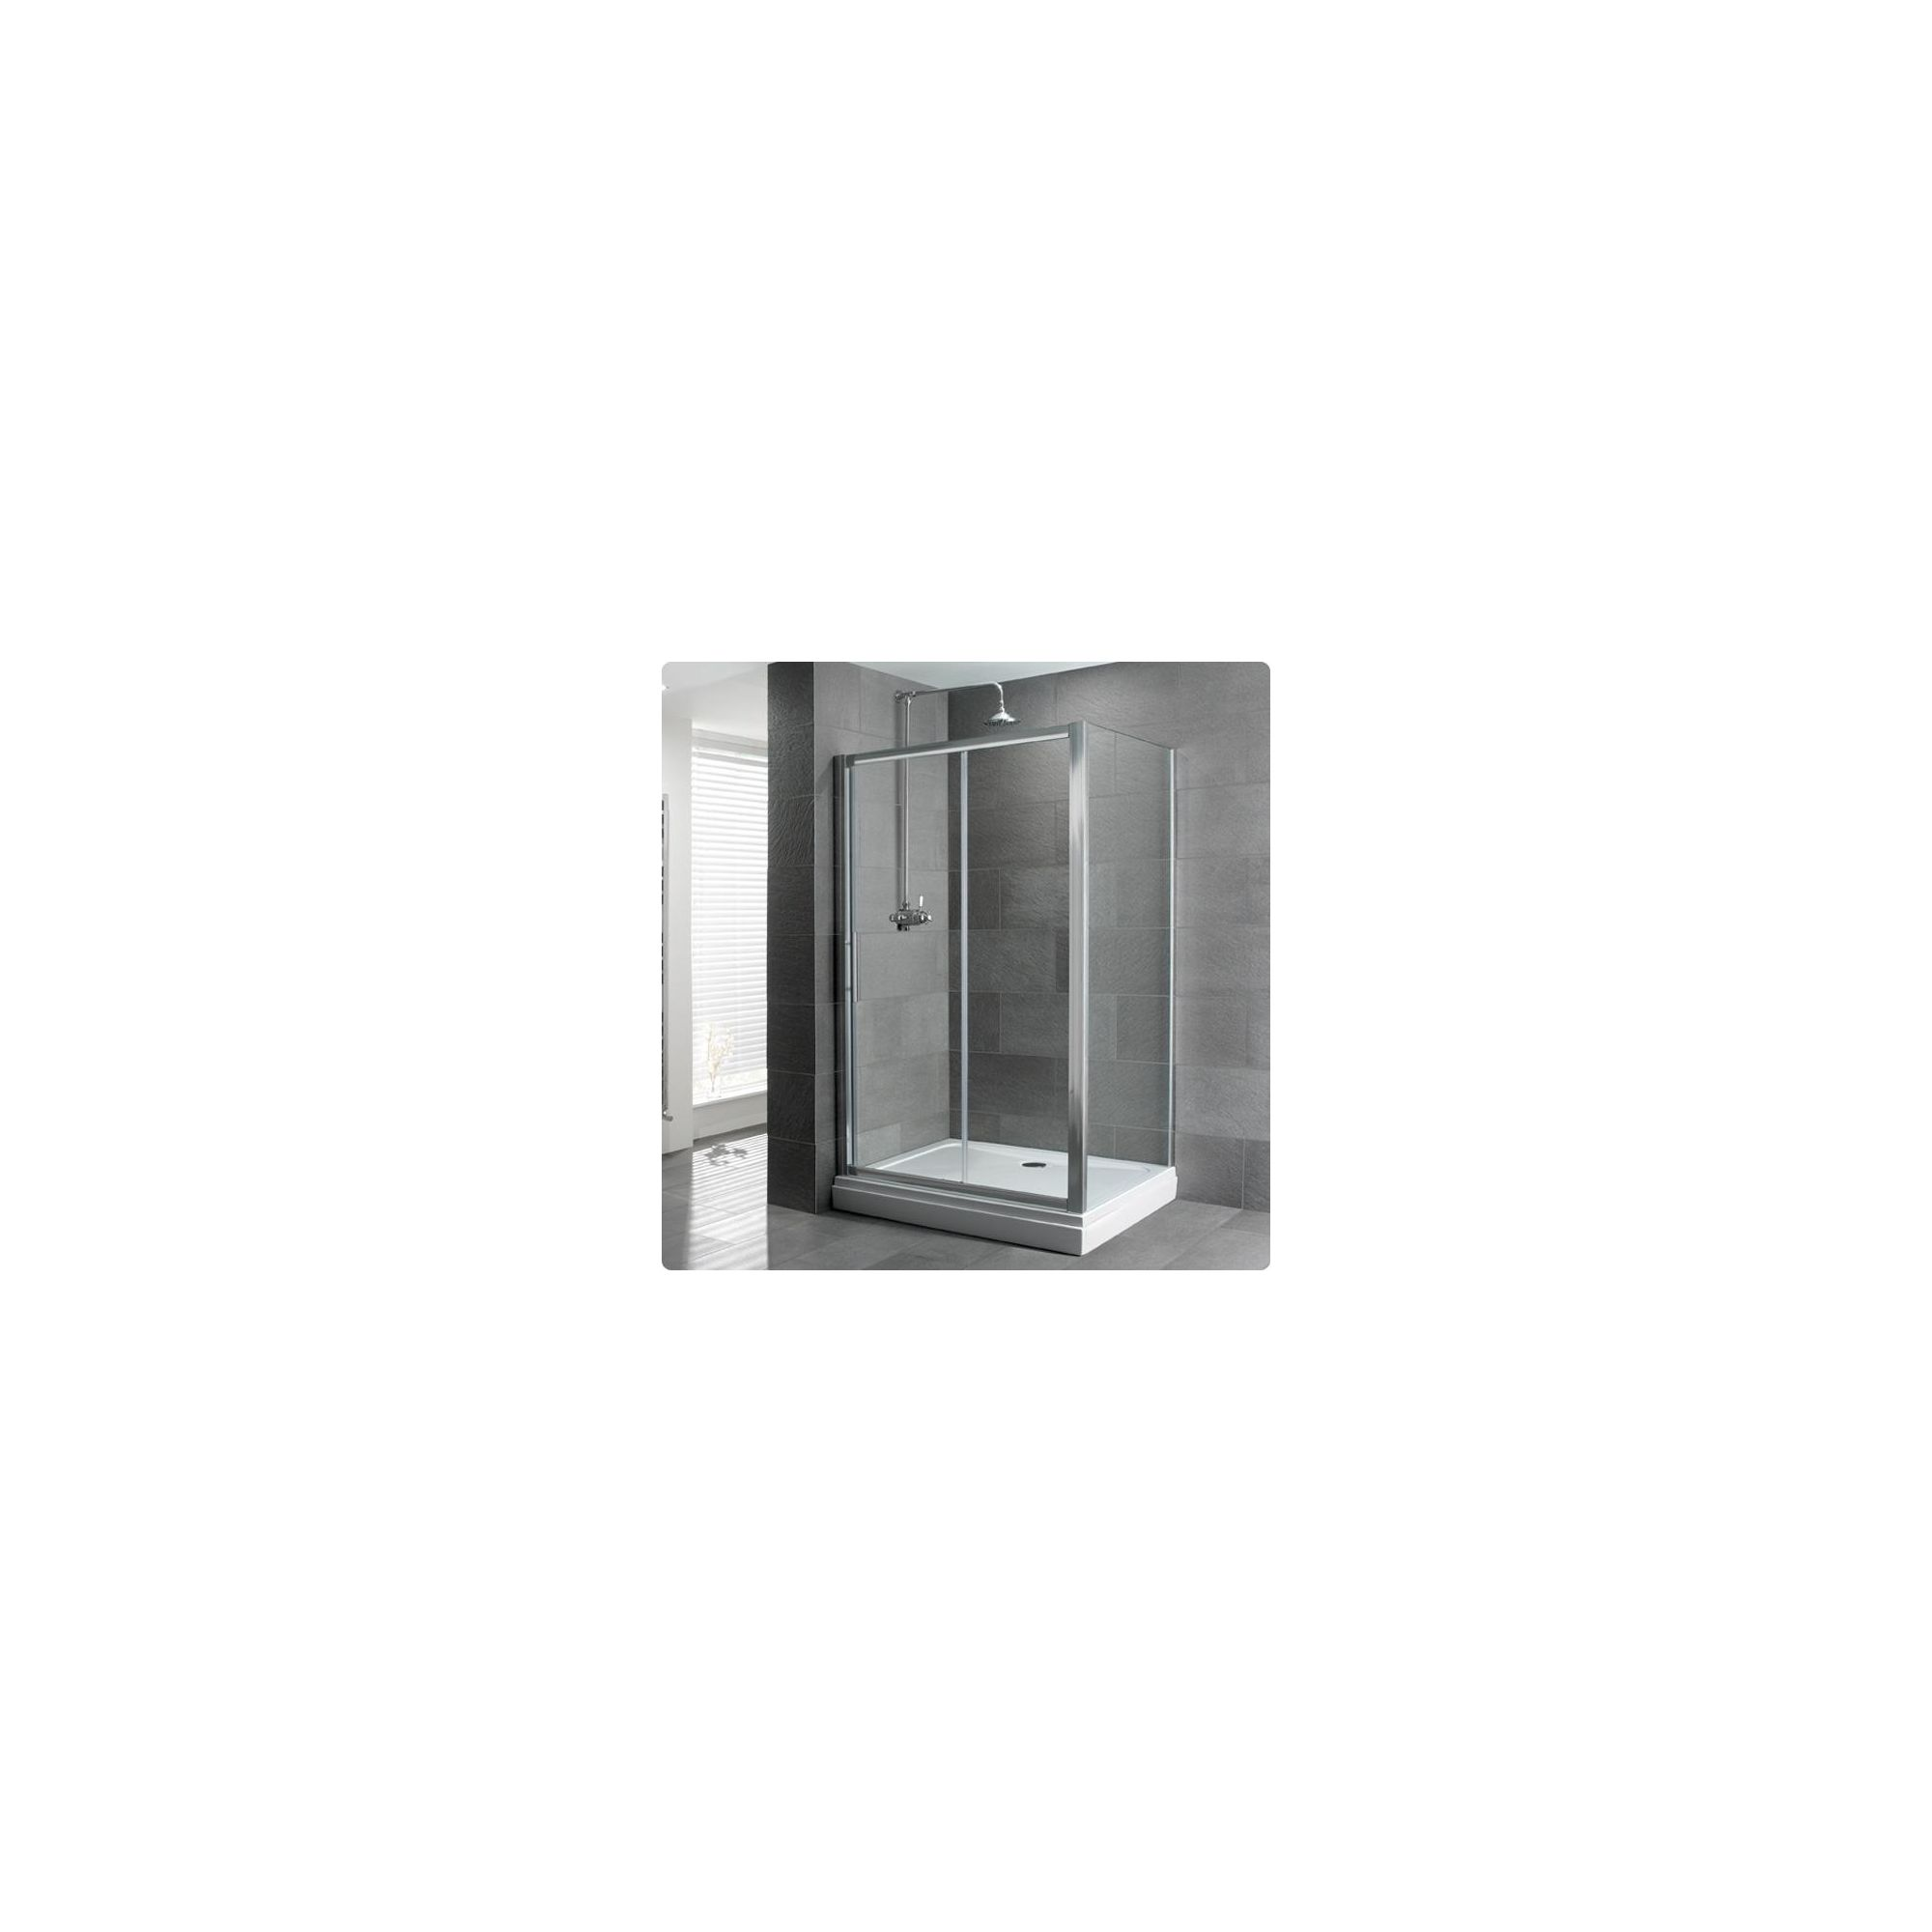 Duchy Select Silver Single Sliding Door Shower Enclosure, 1000mm x 760mm, Standard Tray, 6mm Glass at Tesco Direct